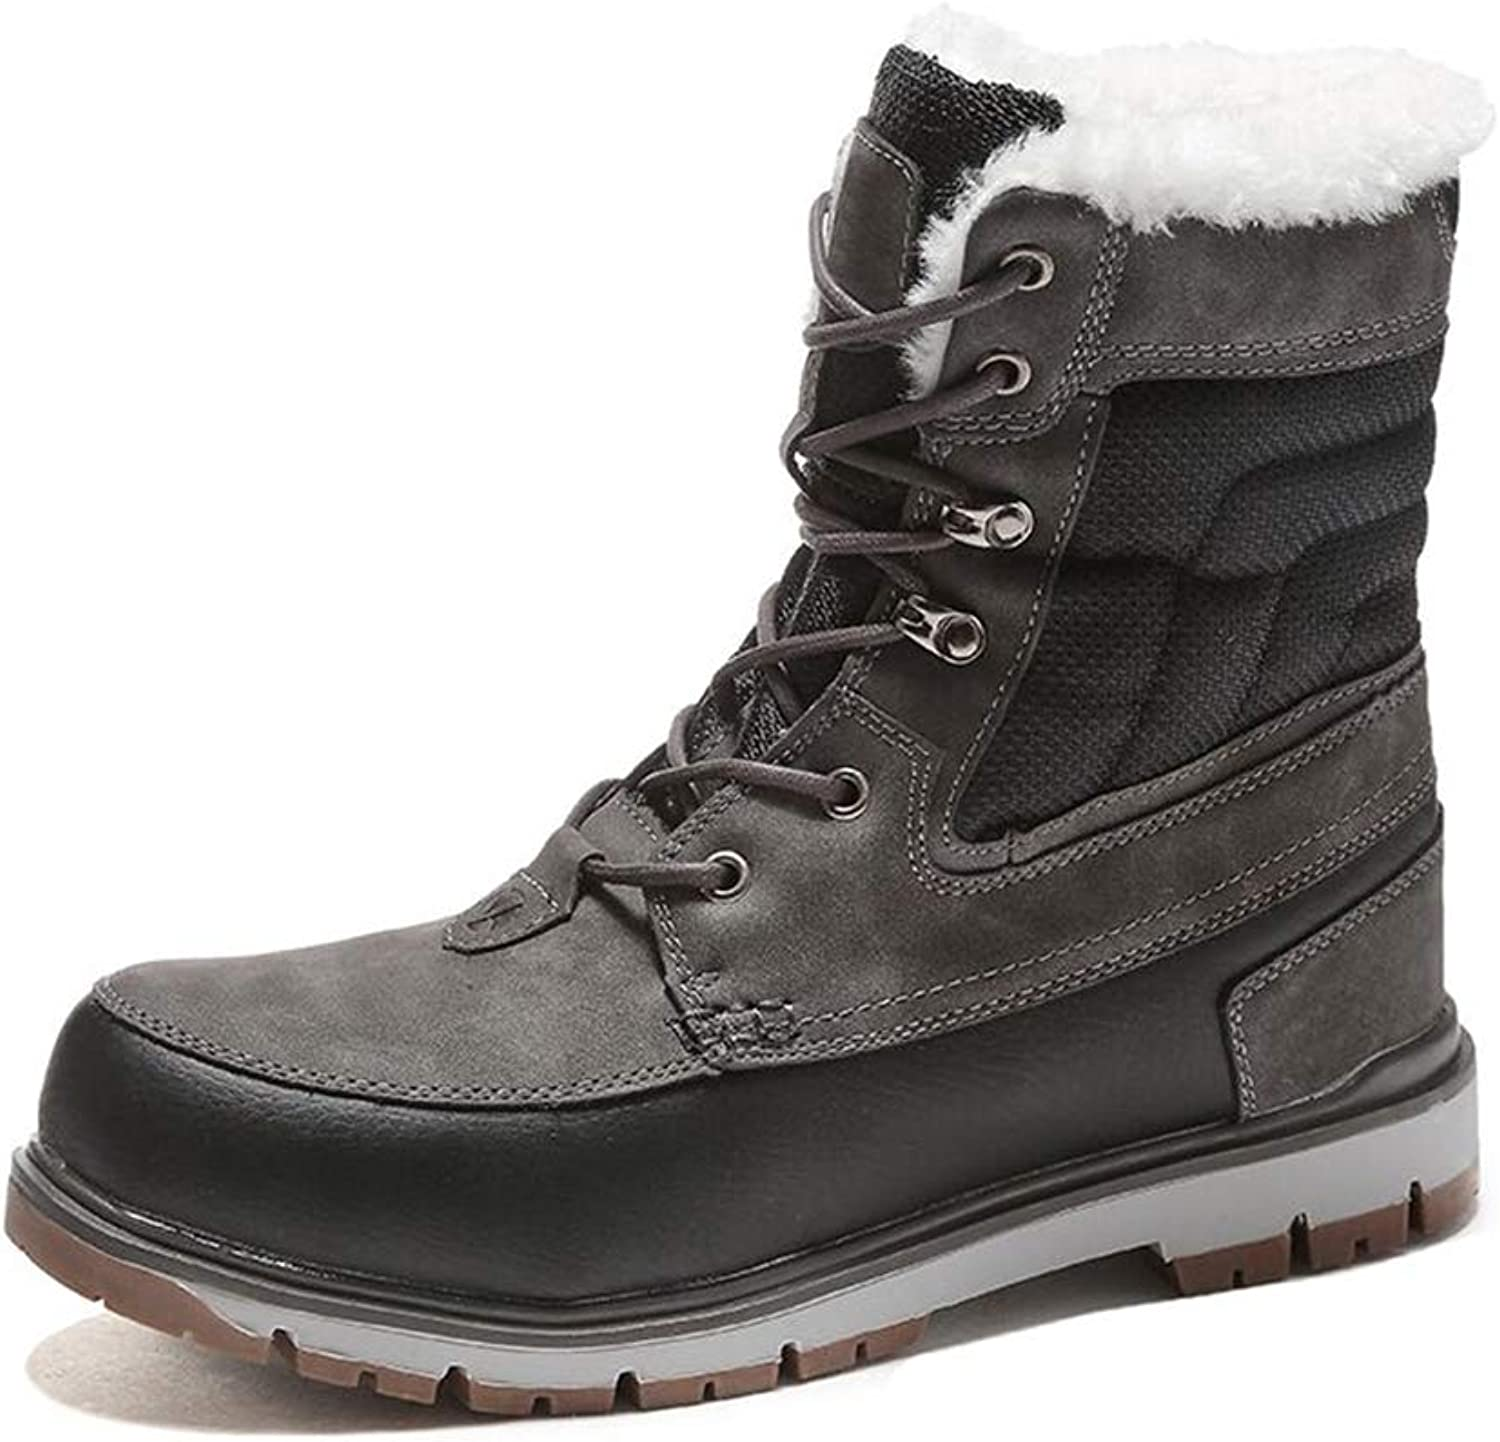 JITIAN Mens Winter Snow Boots Mid-Calf Boots with Plush Fur Waterproof Casual Motorcycle Boots Lace-up Warm Martin Boots in Black Brown